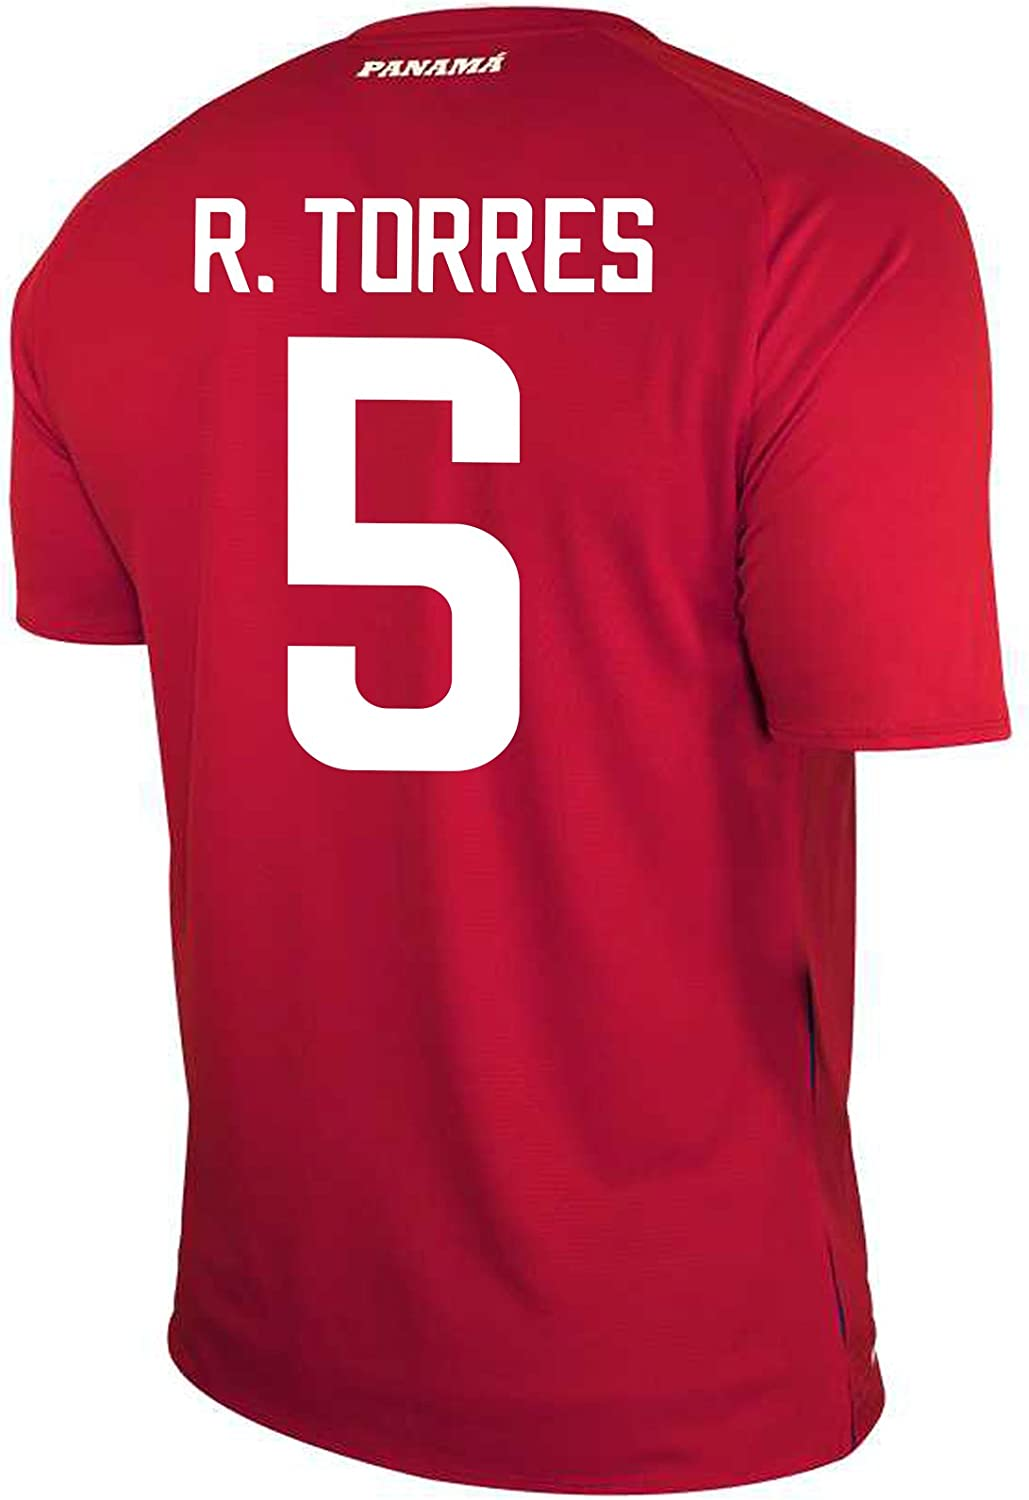 New Balance R. Torres #5 Panama Home Soccer Men's Jersey FIFA World Cup Russia 2018